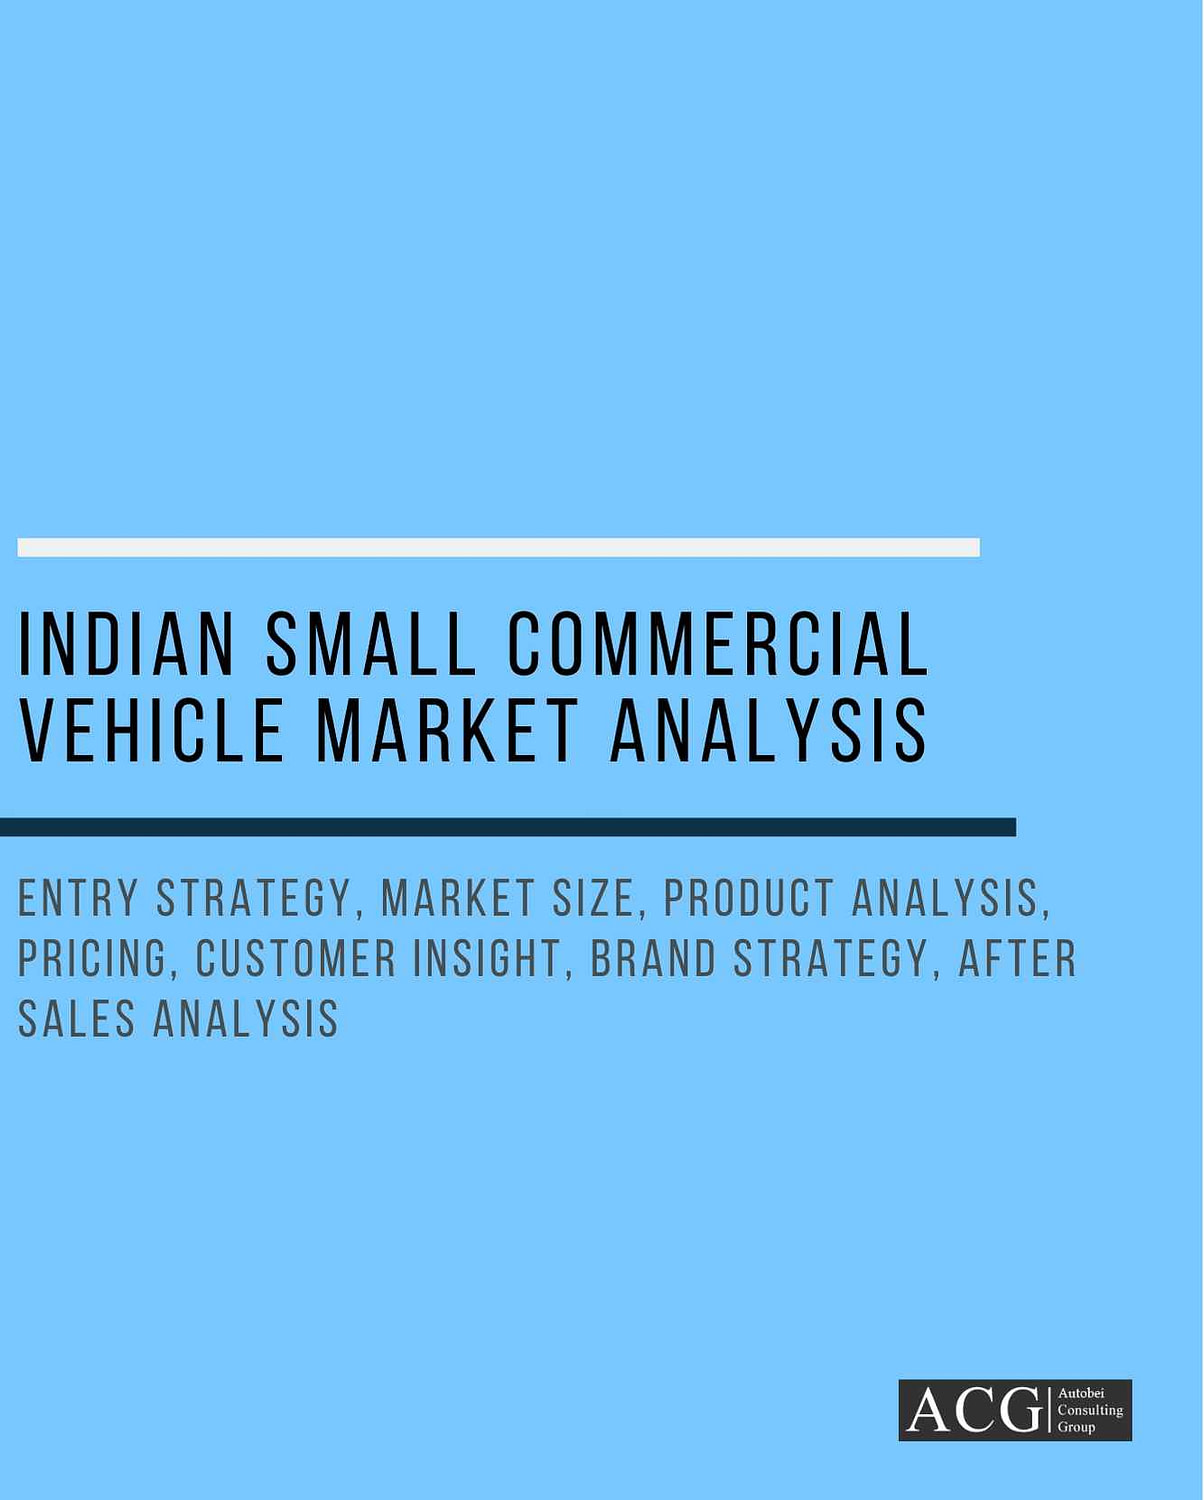 Indian Small Commercial Vehicle Market Analysis and Forecast